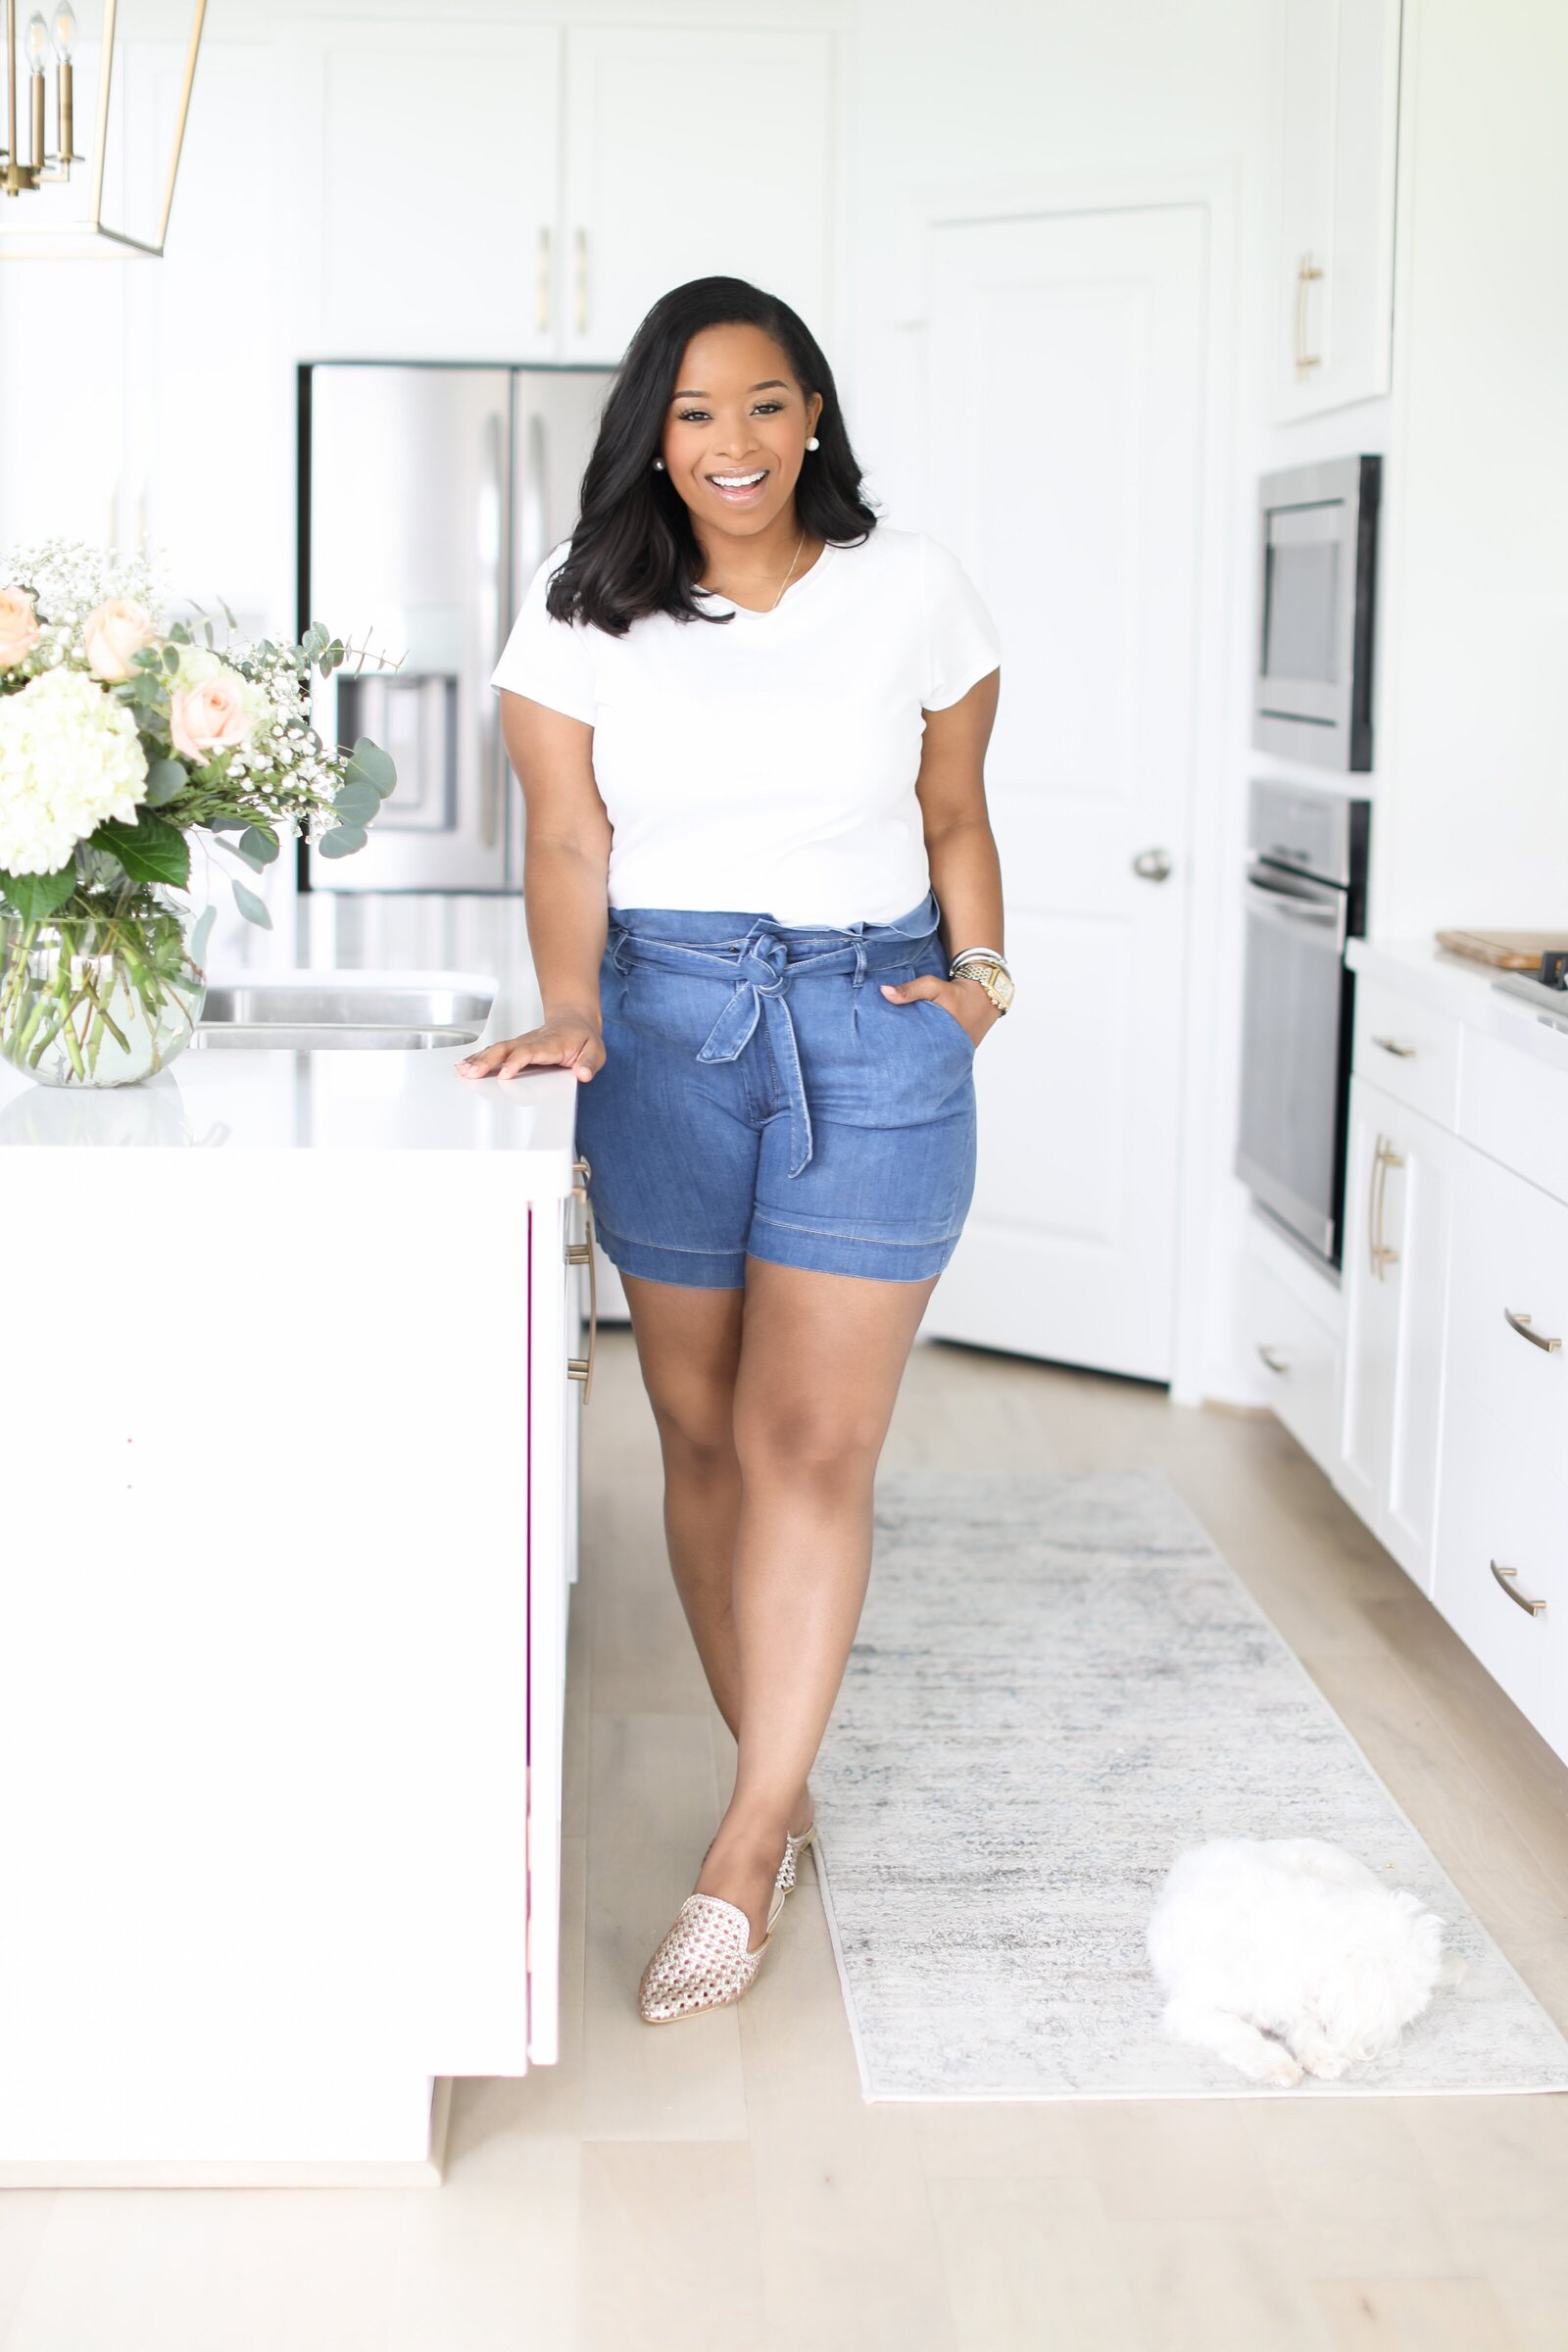 Carmen Renee - Houston Texas Lifestyle Beauty Style Decor Motherhood Blogger - 11